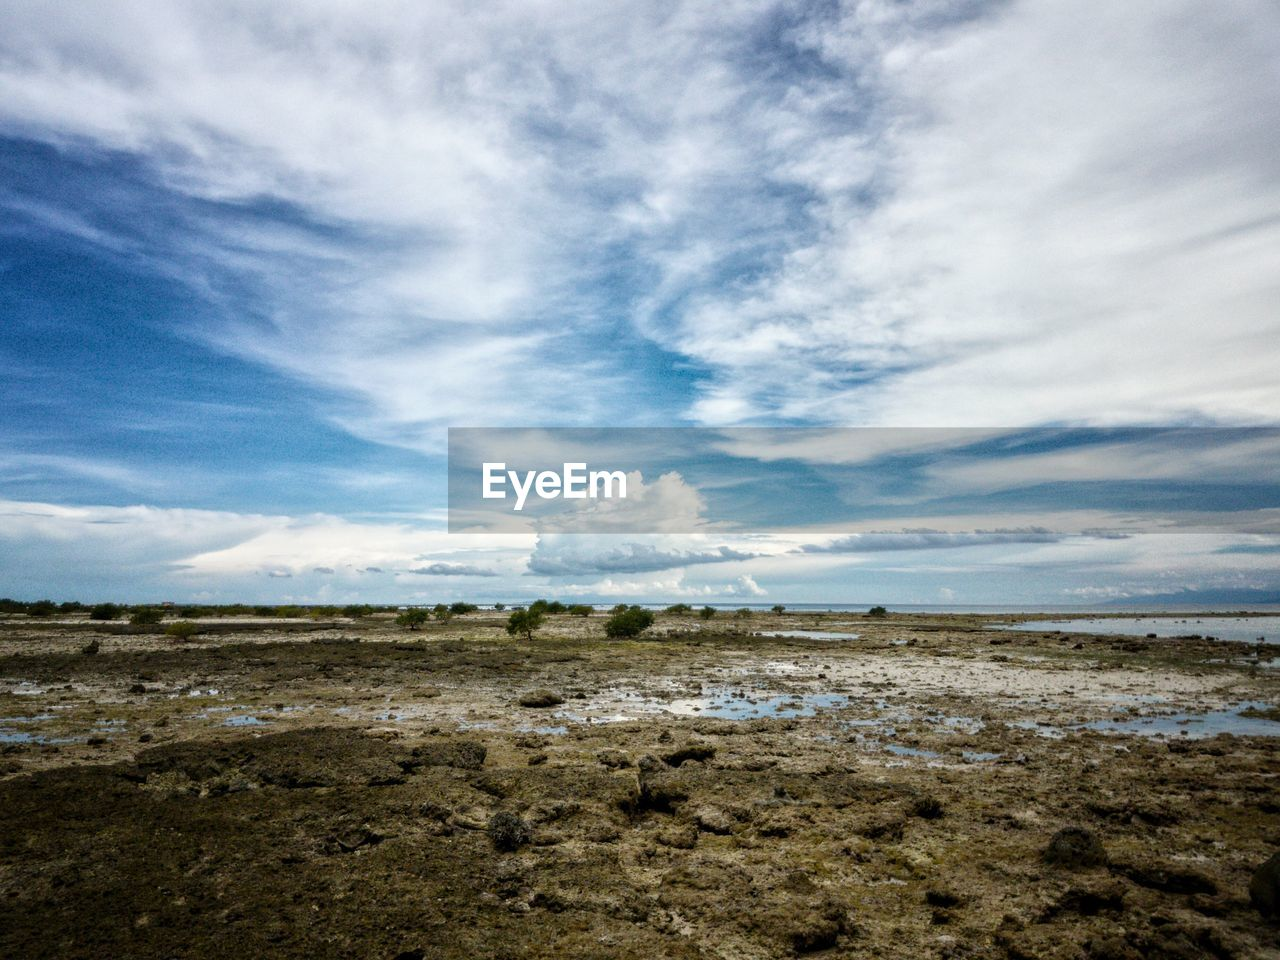 cloud - sky, sky, environment, landscape, day, nature, tranquility, tranquil scene, scenics - nature, land, no people, non-urban scene, horizon over land, beauty in nature, horizon, outdoors, water, dirt, pollution, arid climate, climate